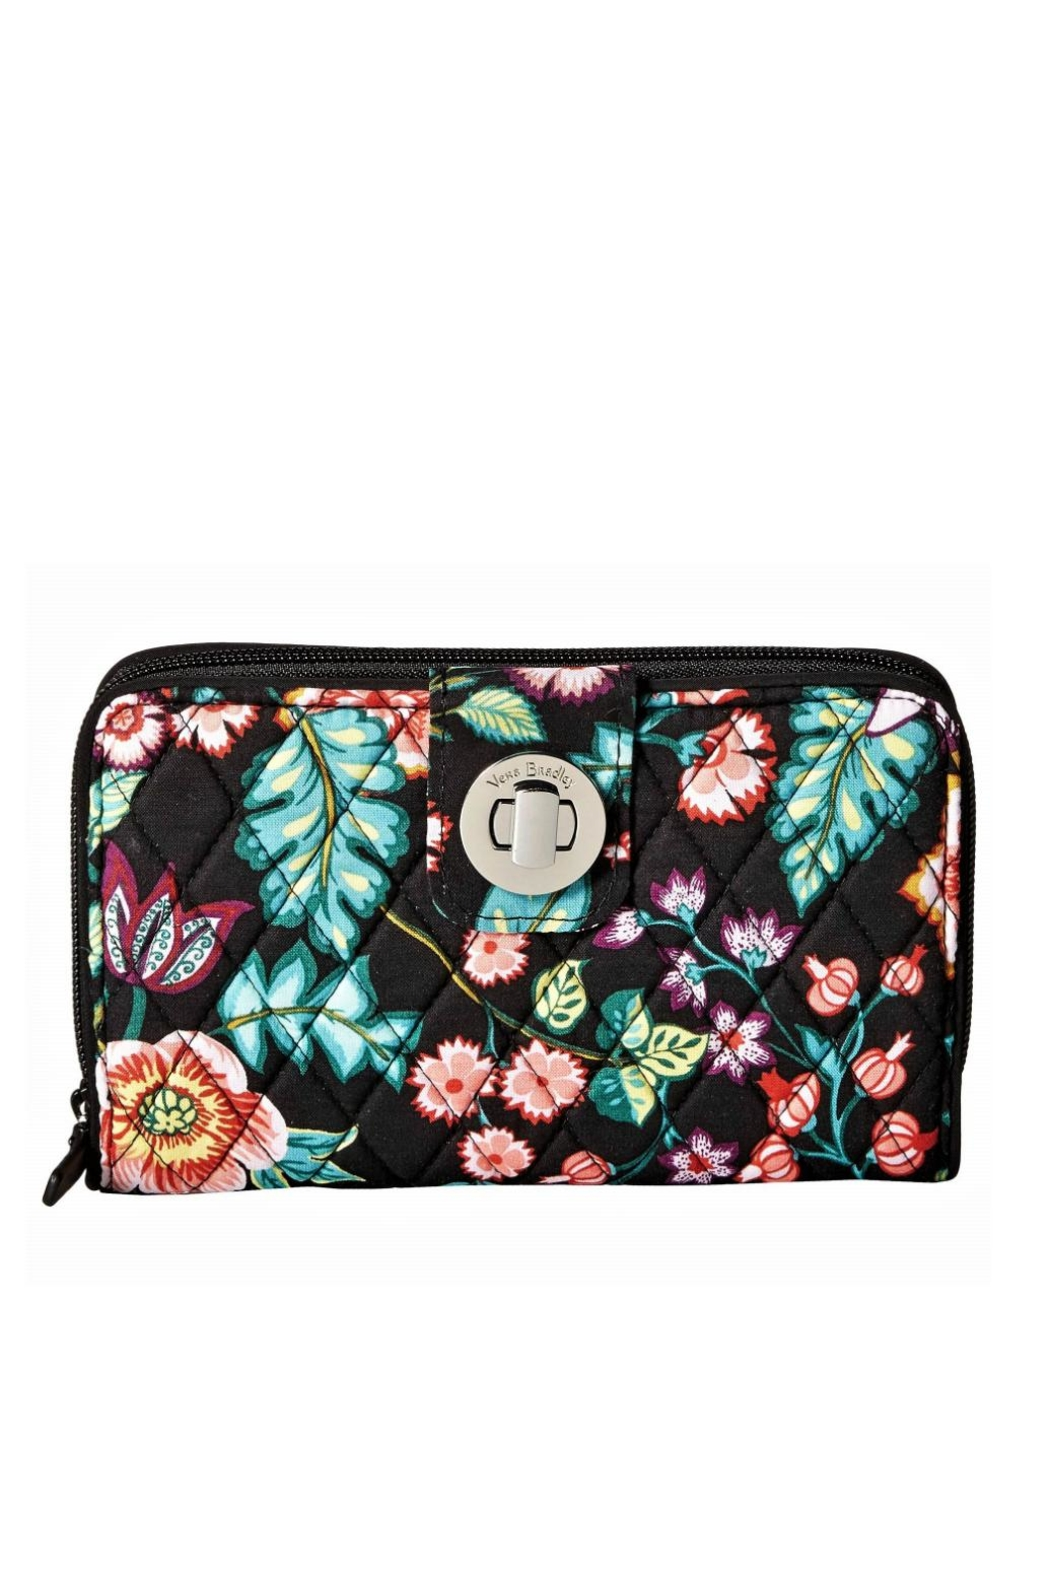 d9aa2027a6 Vera Bradley Vines Floral Turnlock from Kentucky by Mimi s Gift ...